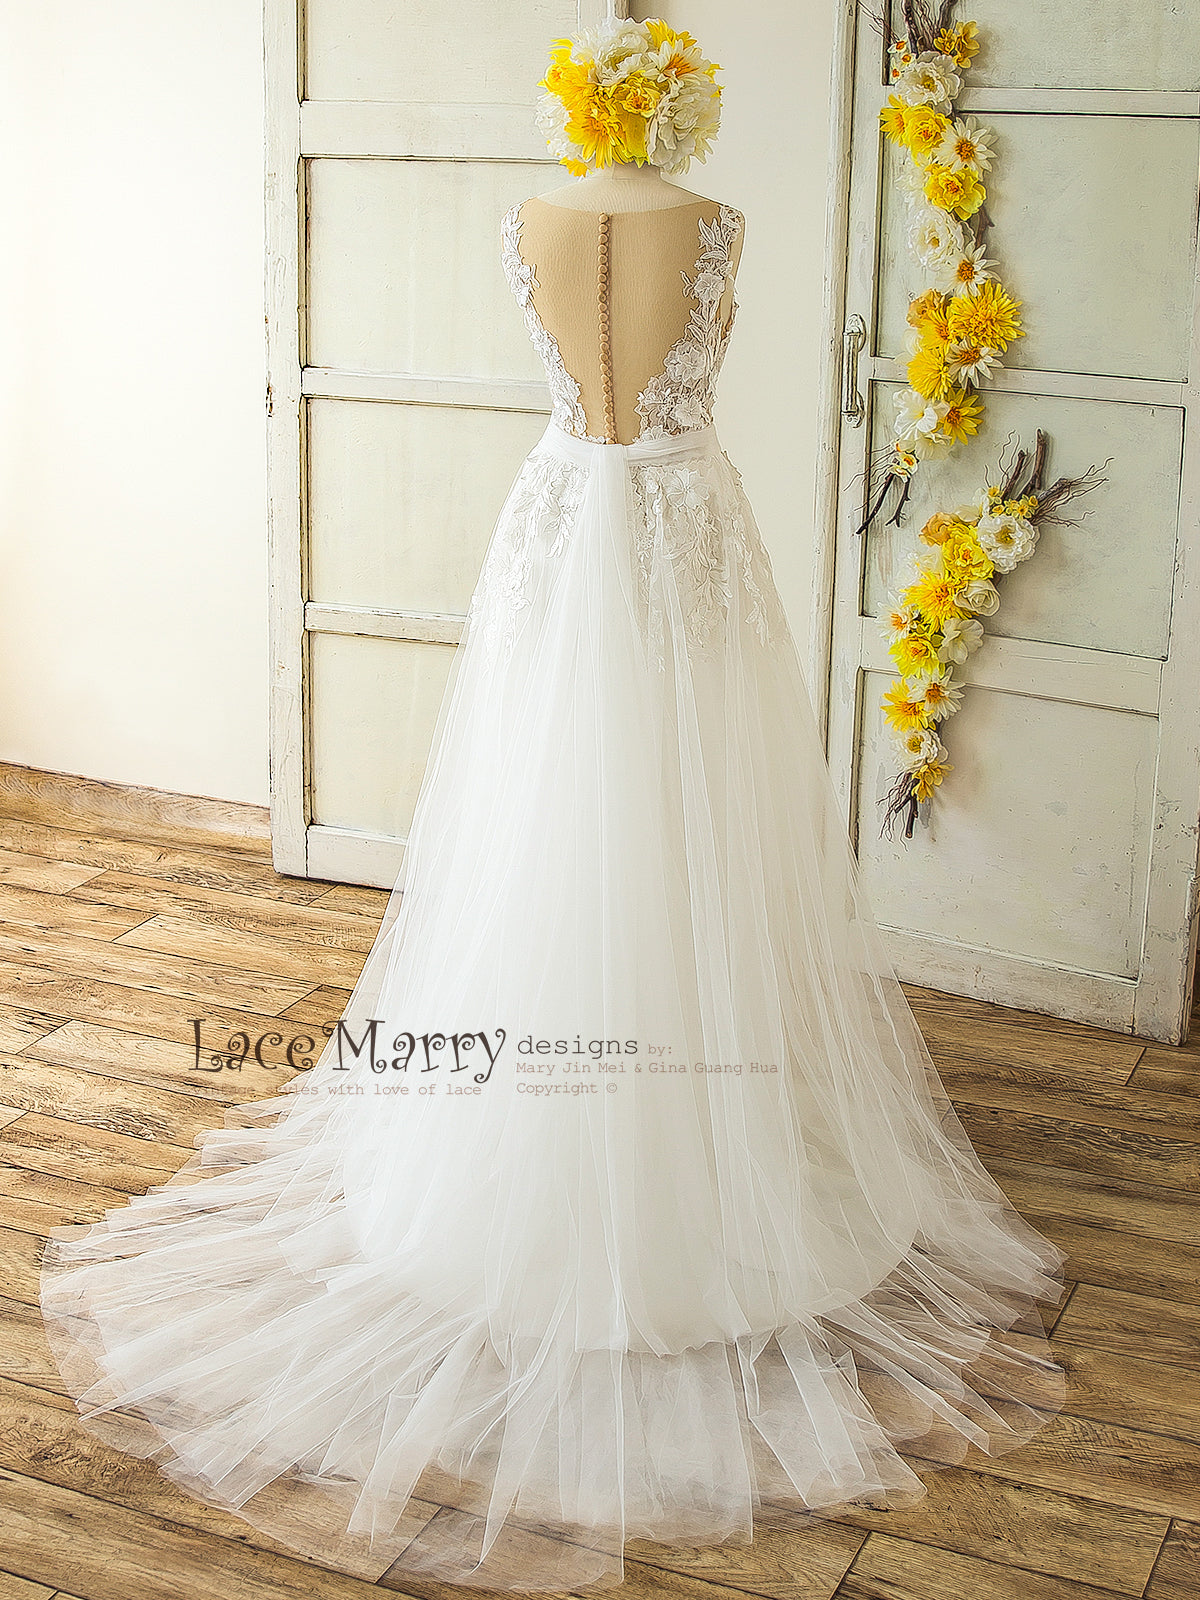 4701a1c08d3ed 3D Lace Boho Wedding Dress with Sheer Nude Top